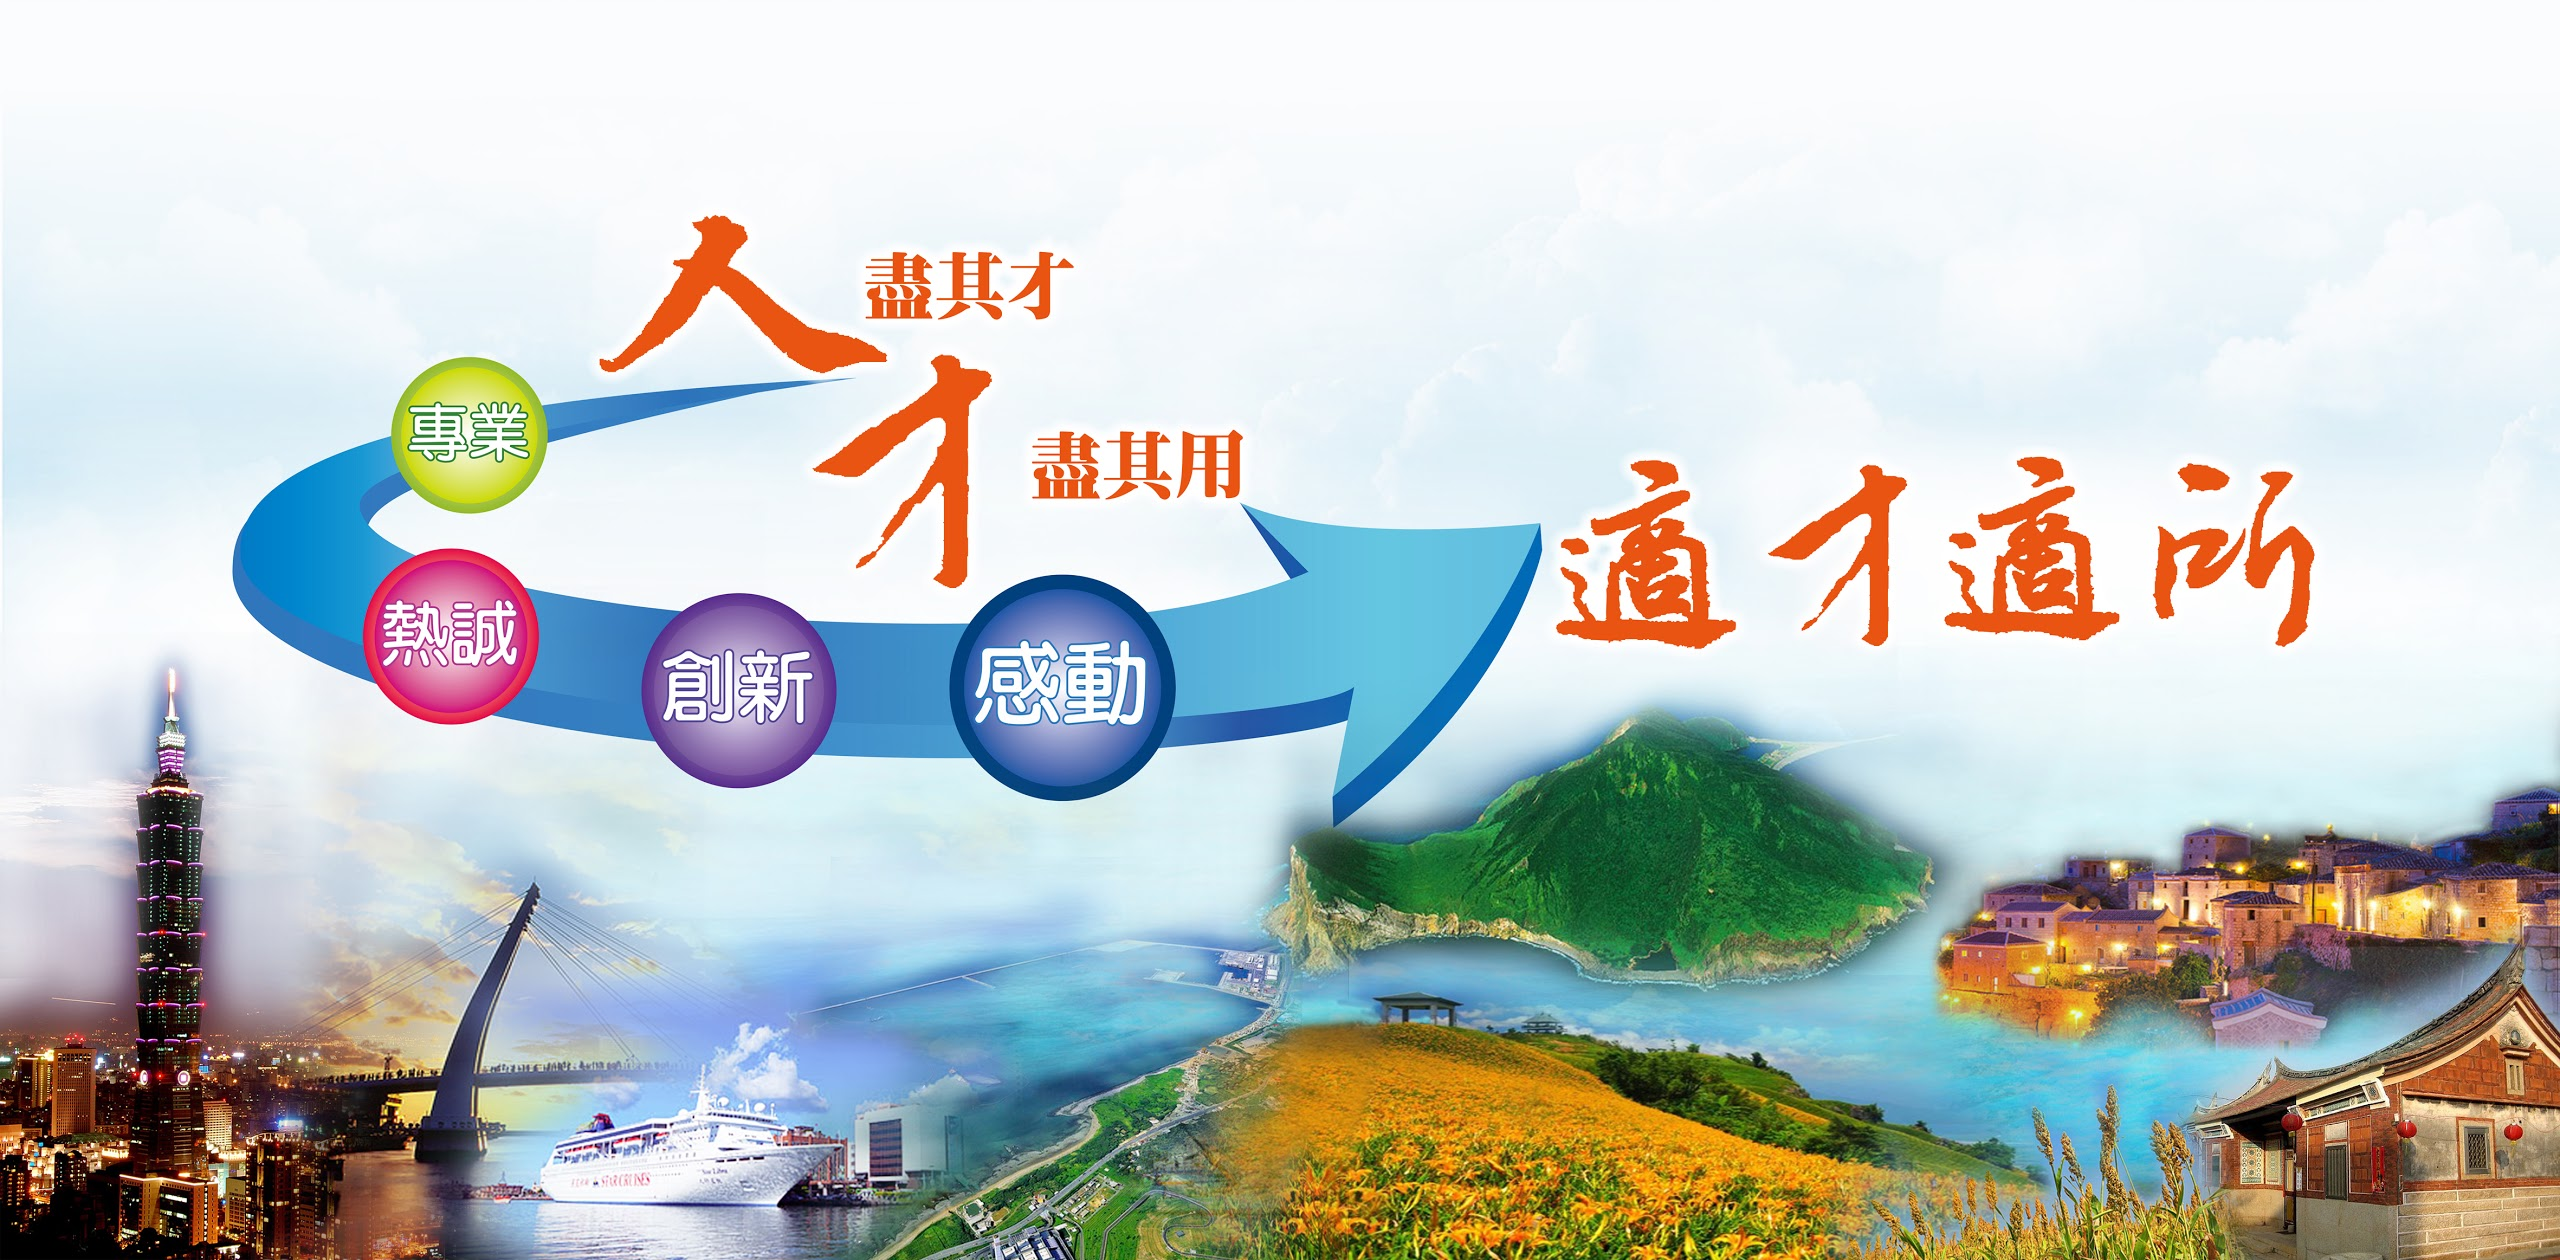 Taipei-Keelung-Yilan- Hualien- -Kinmen-Matsu Regional Branch of Workforce Development Agency